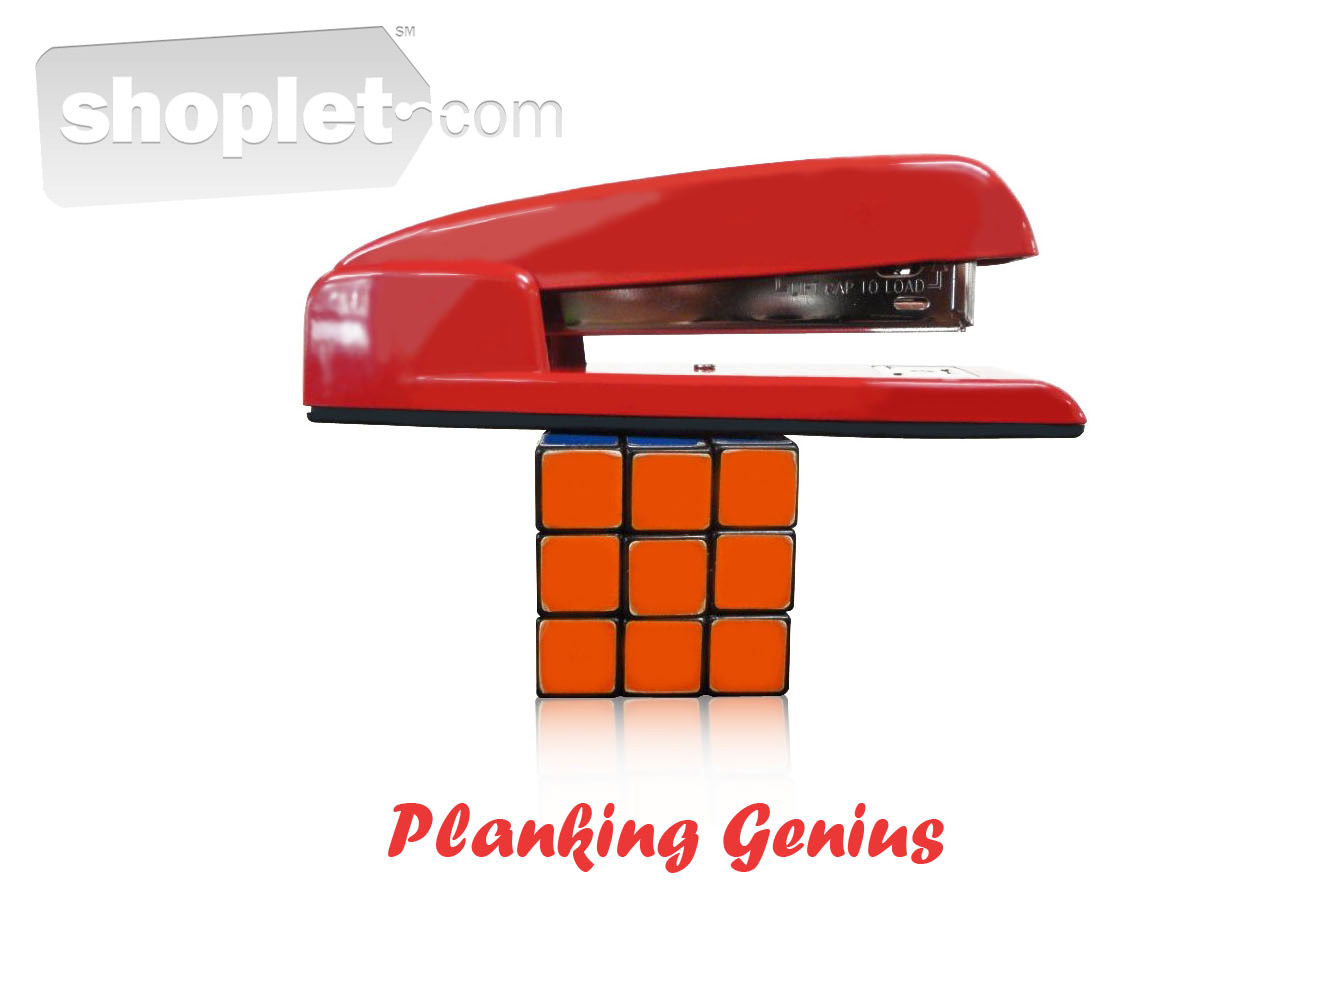 Shoplet Planking Stapler Rubiks Cube1 The Planking Stapler has Moved!